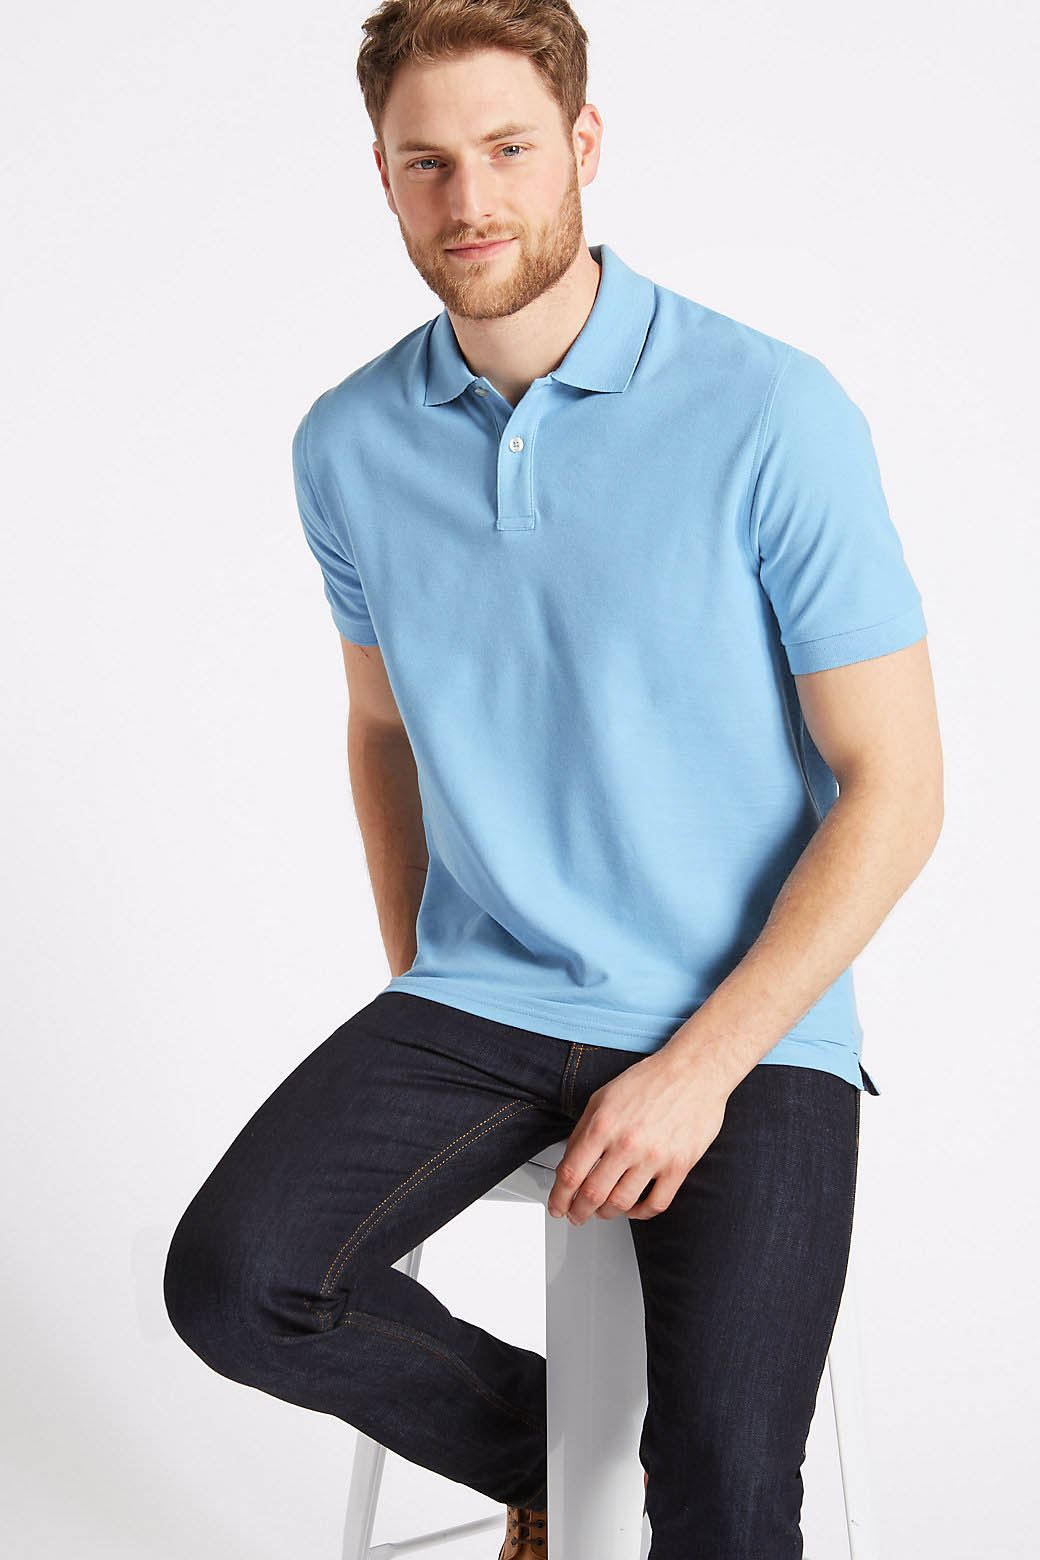 Marks-amp-Spencer-Mens-Cotton-Pique-Polo-Shirt-Extra-Large-Sizes thumbnail 19